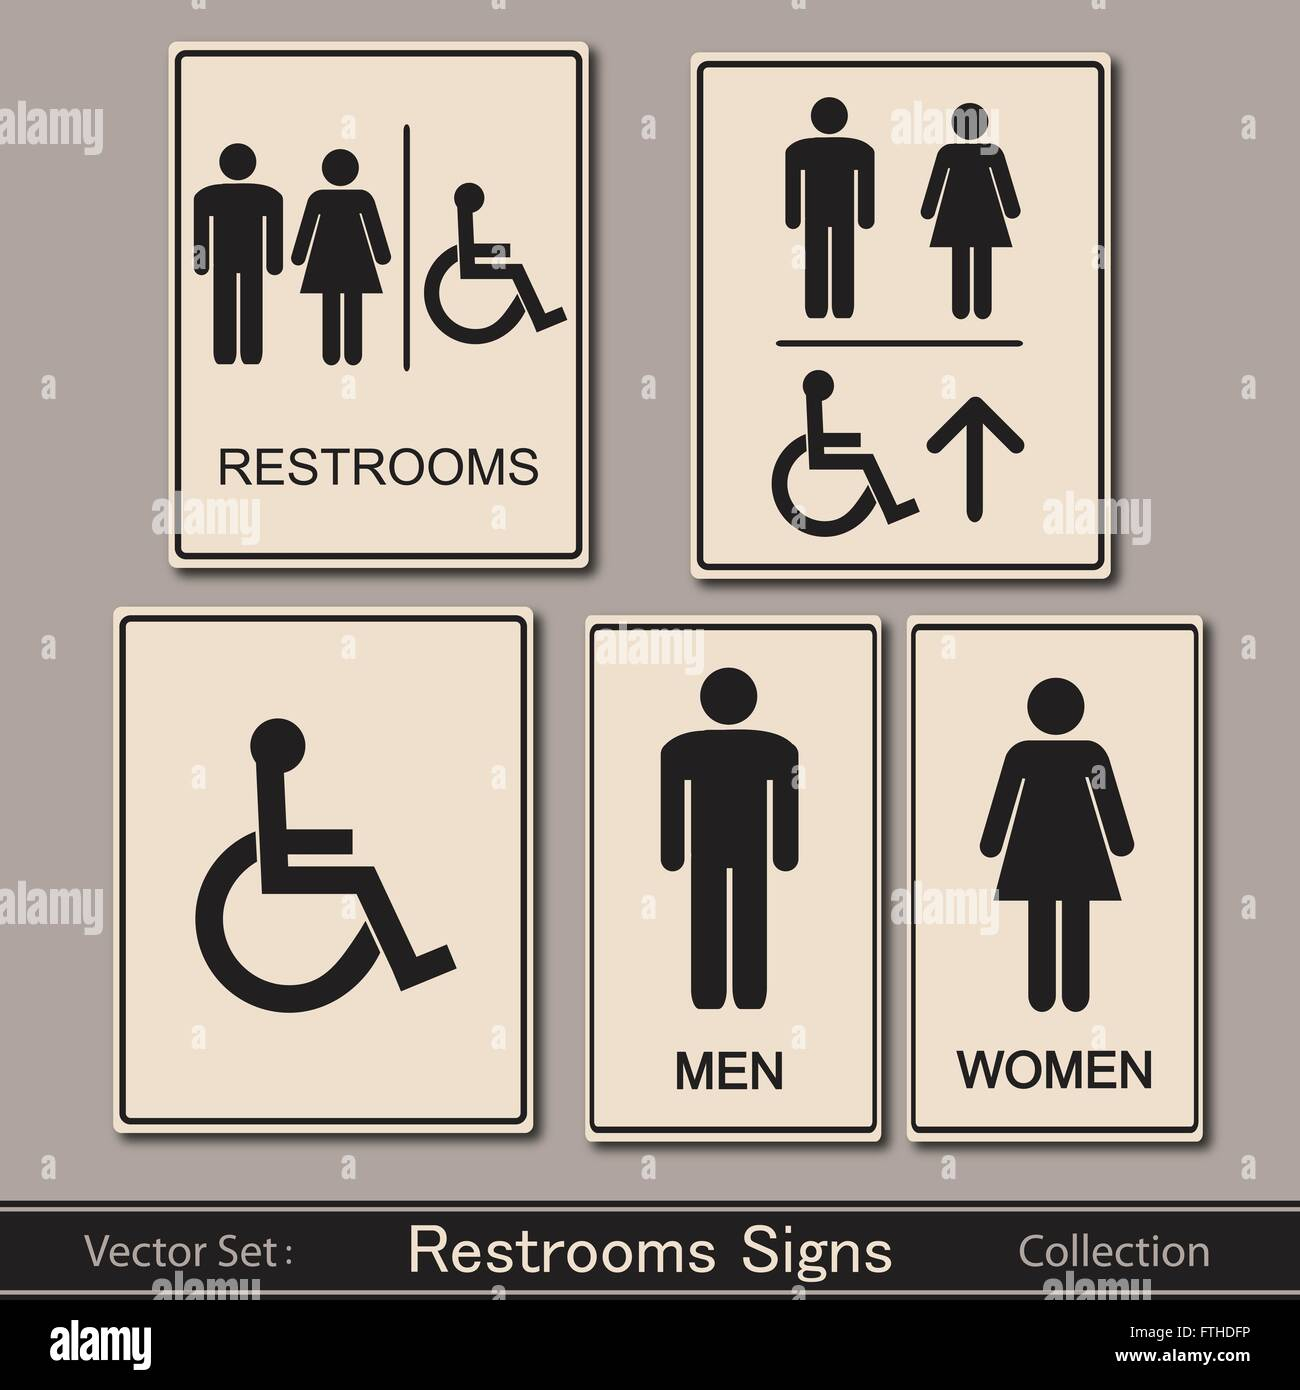 Restroom Signs Collection Vector Illustration Stock Vector